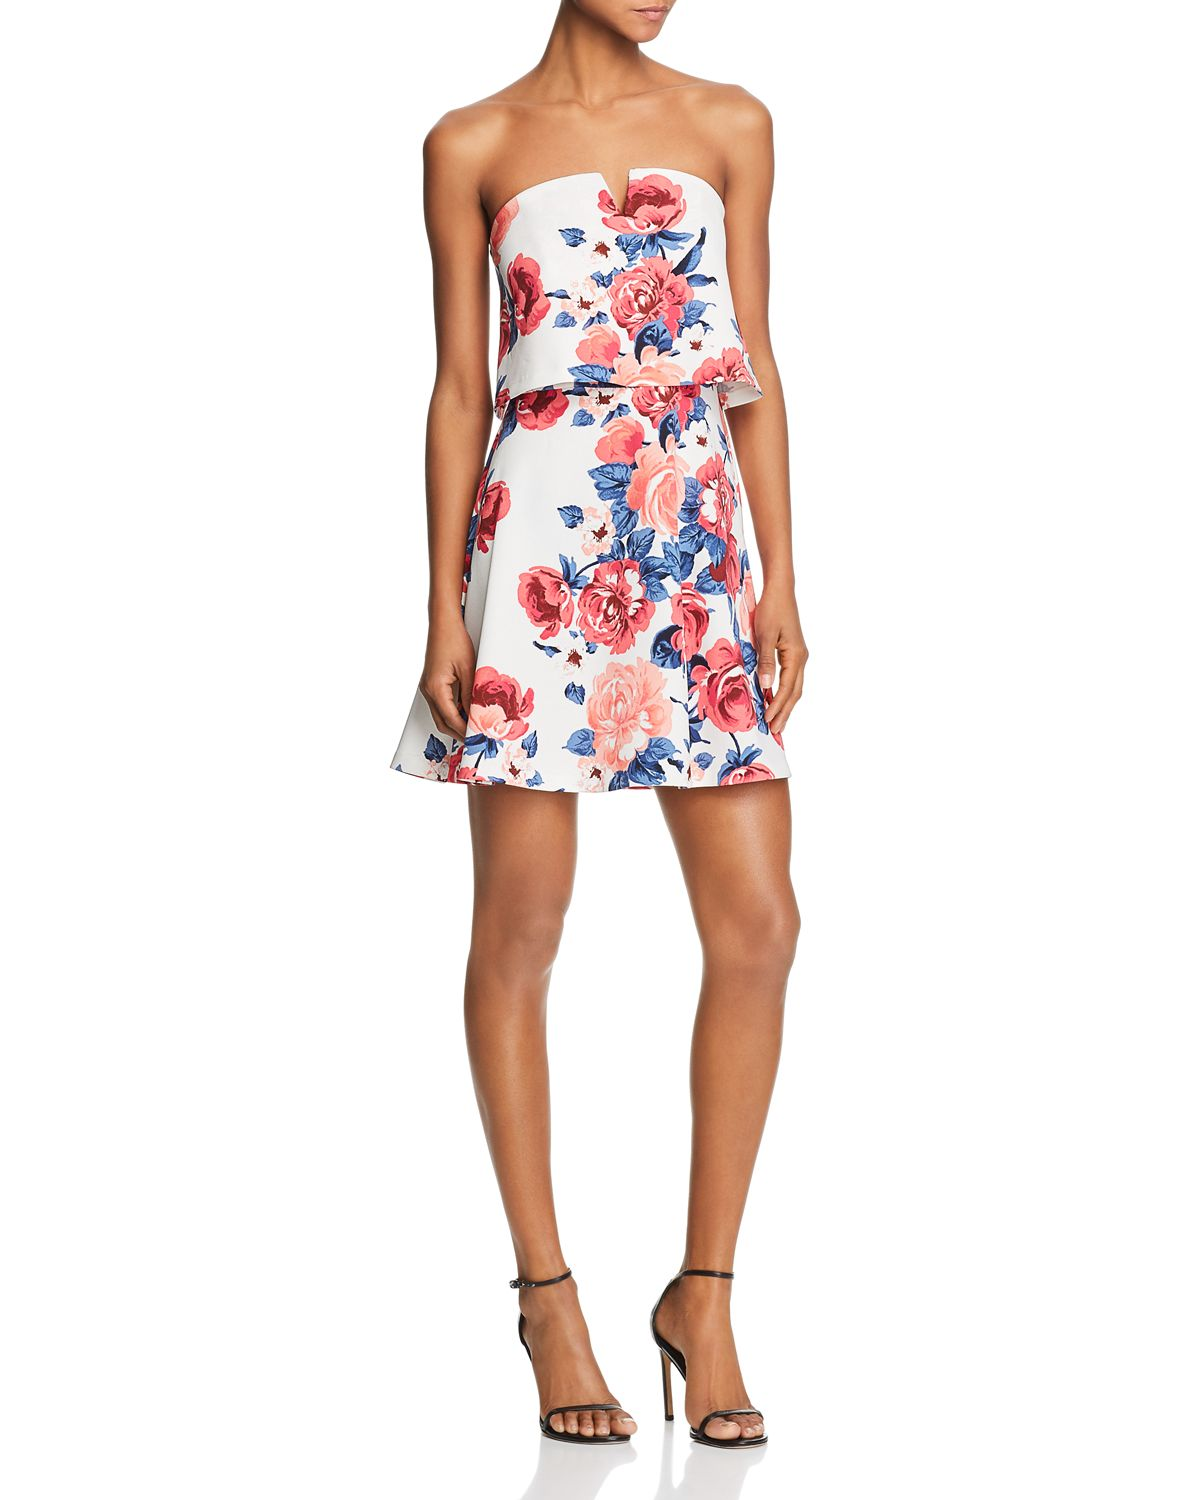 Floral Print Strapless Dress   100 Percents Exclusive by Aqua